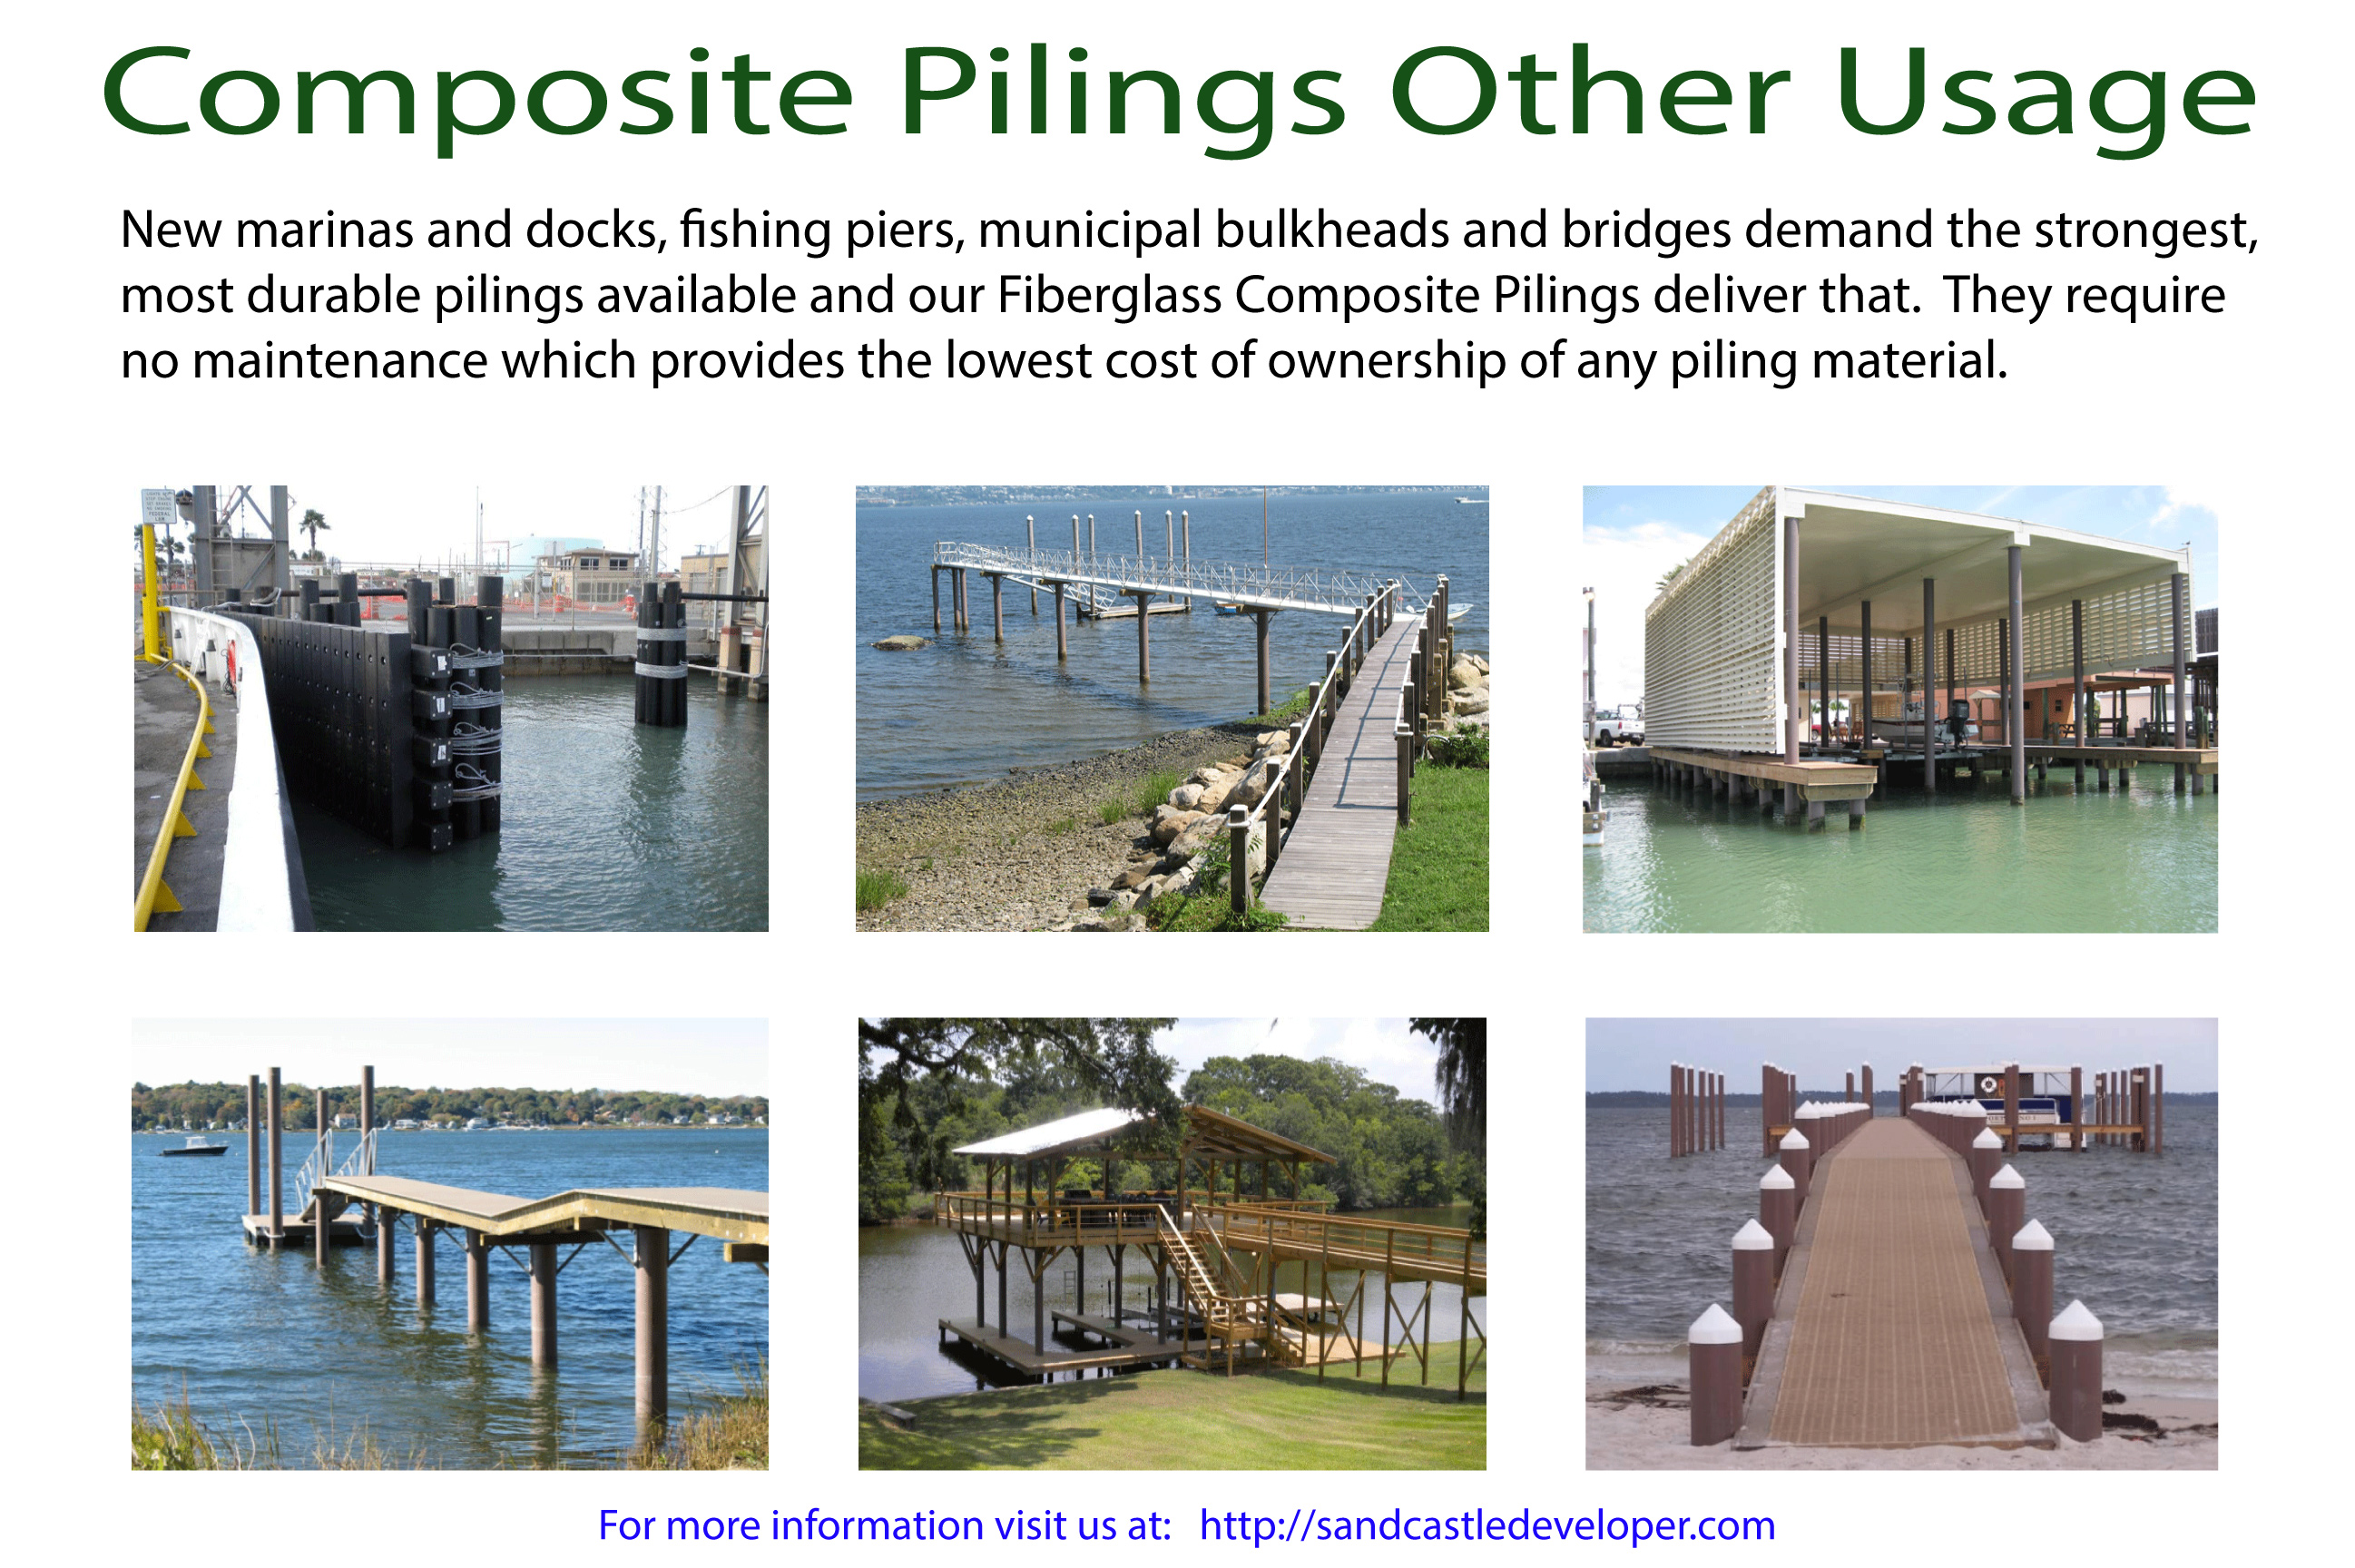 Fiberglass Composite Pilings More Usage